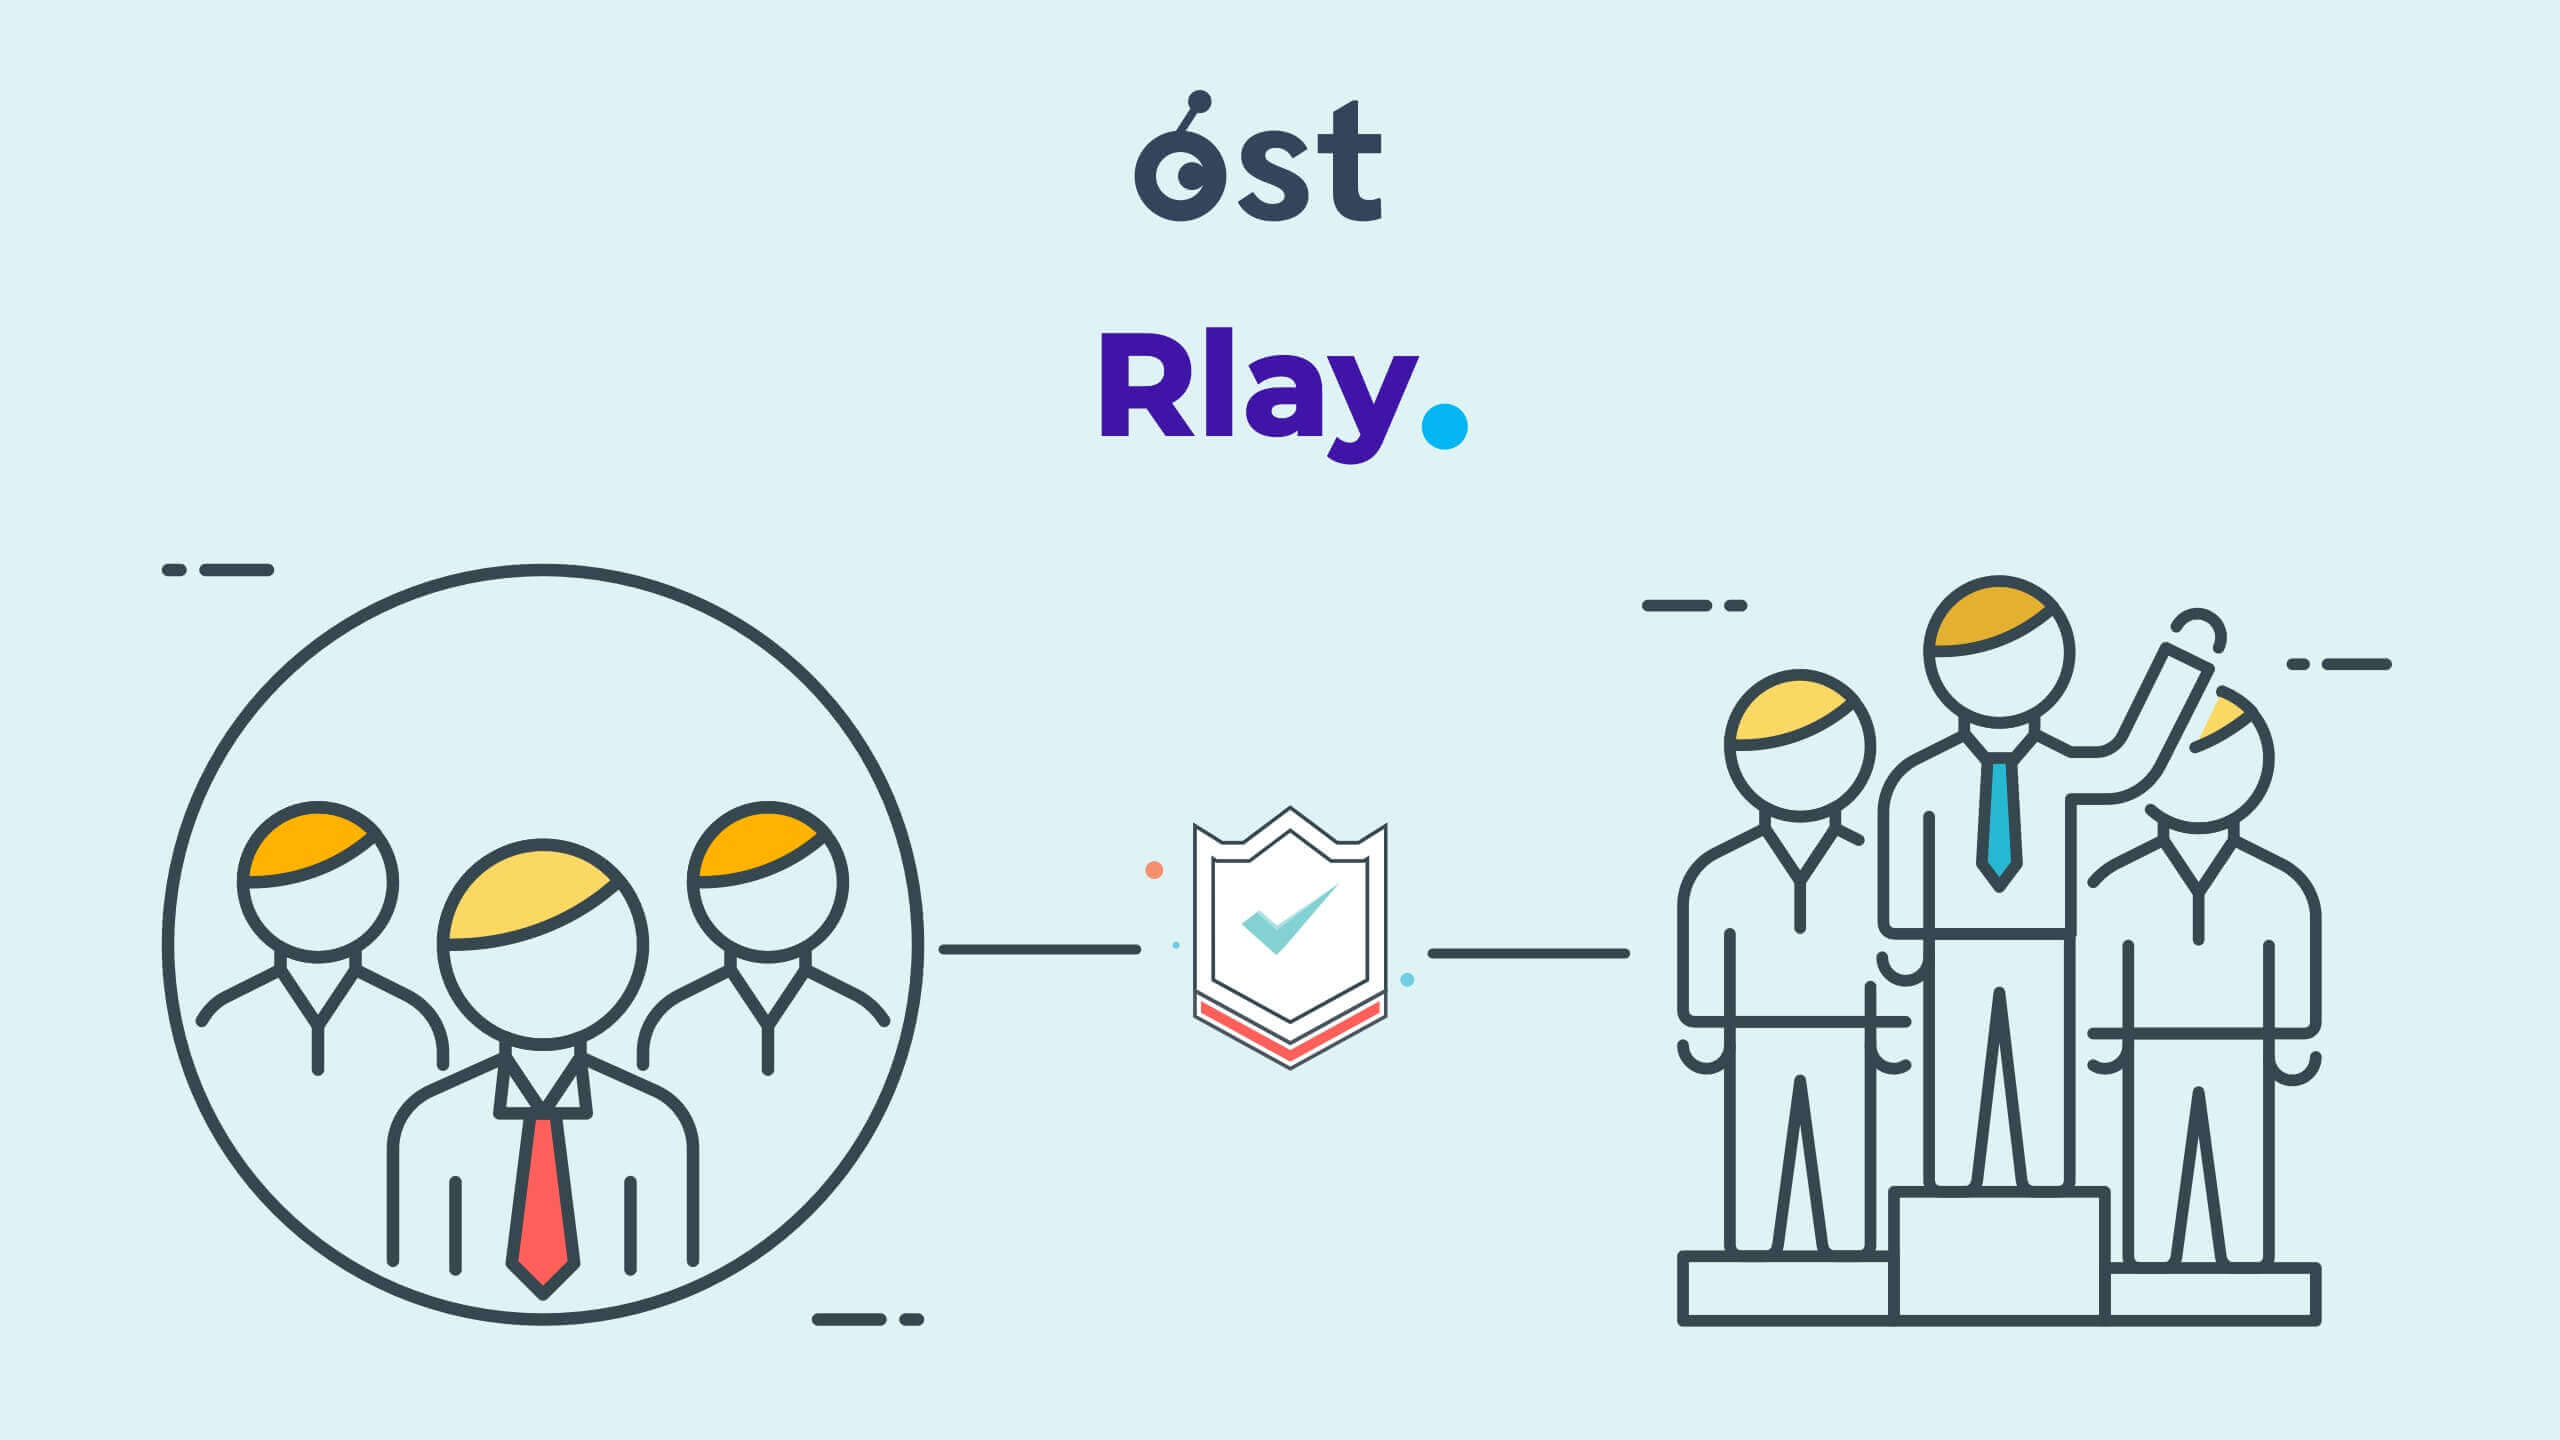 OST's Newest Partner, Rlay, to Make the World Honest & Accountable with Blockchain